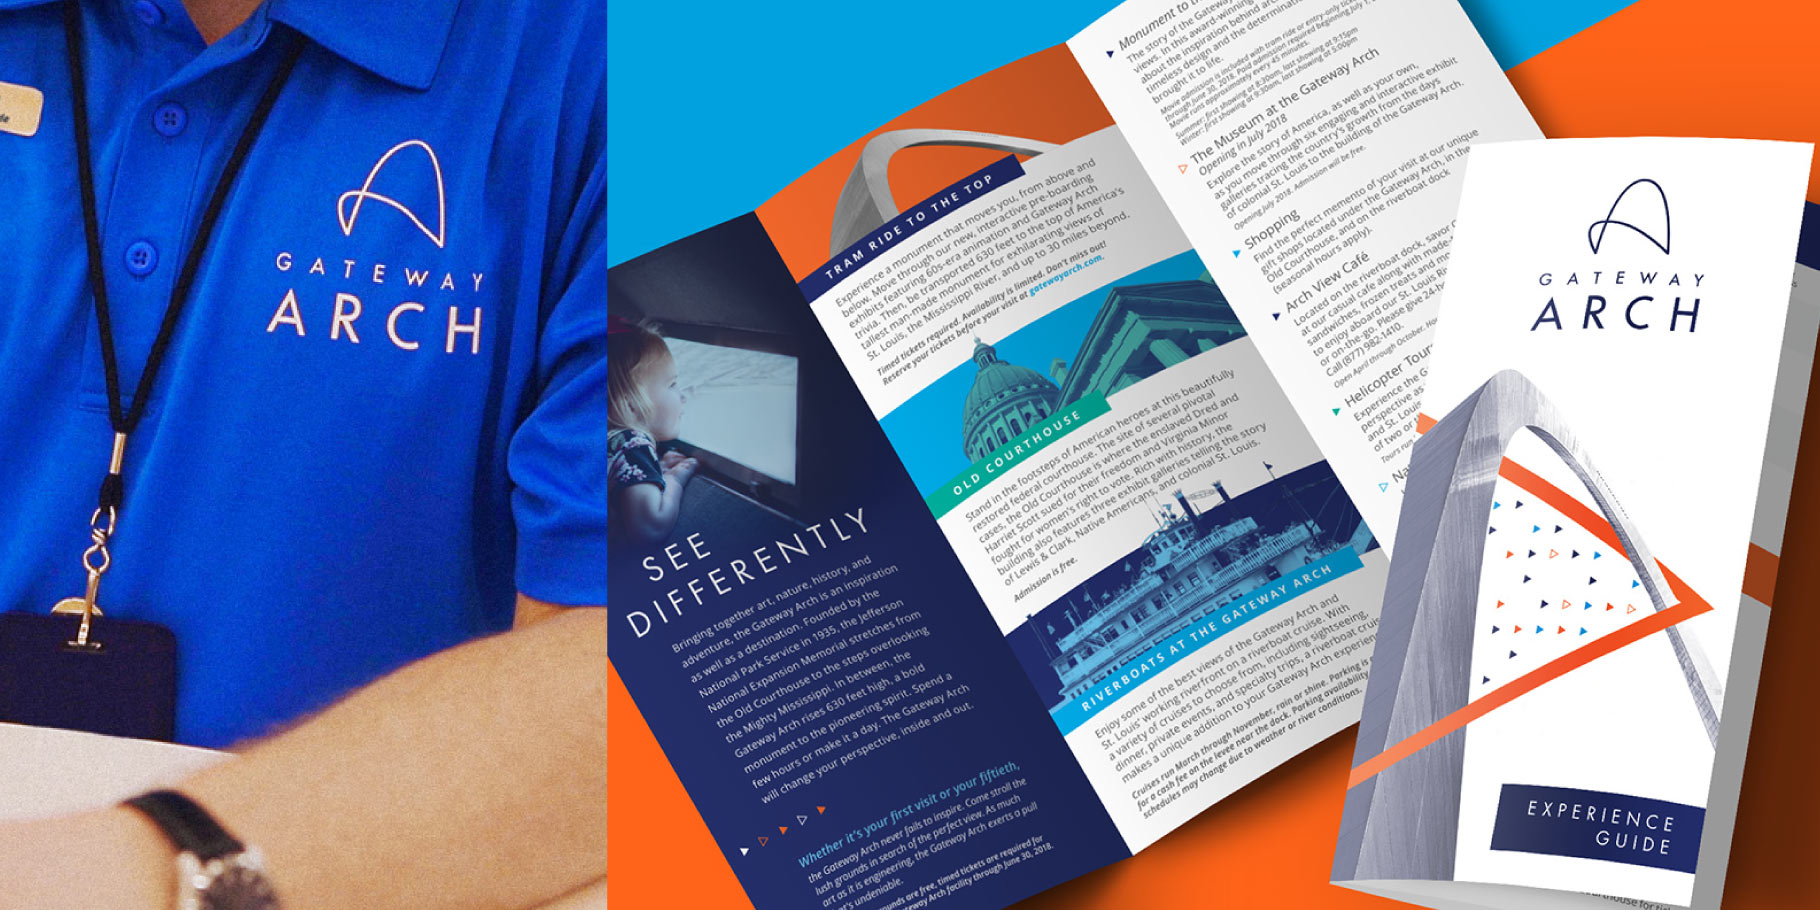 Gateway Arch logo on a polo shirt and a mockup of a Gateway Arch brochure design on a table